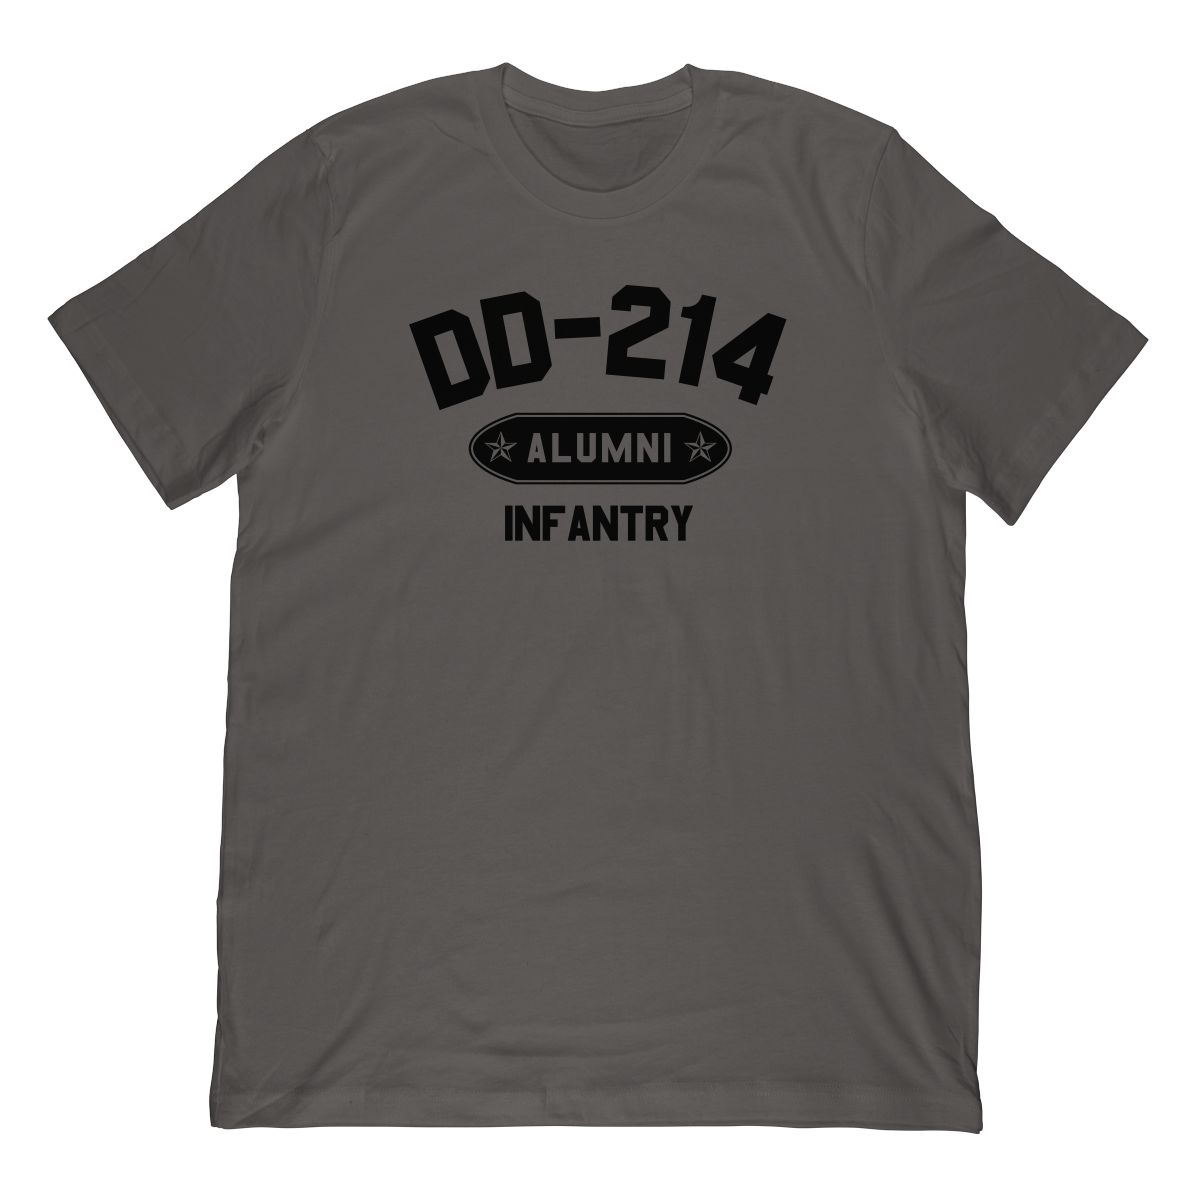 DD-214 Alumni Infantry In Black (Stamp Look) T-Shirt